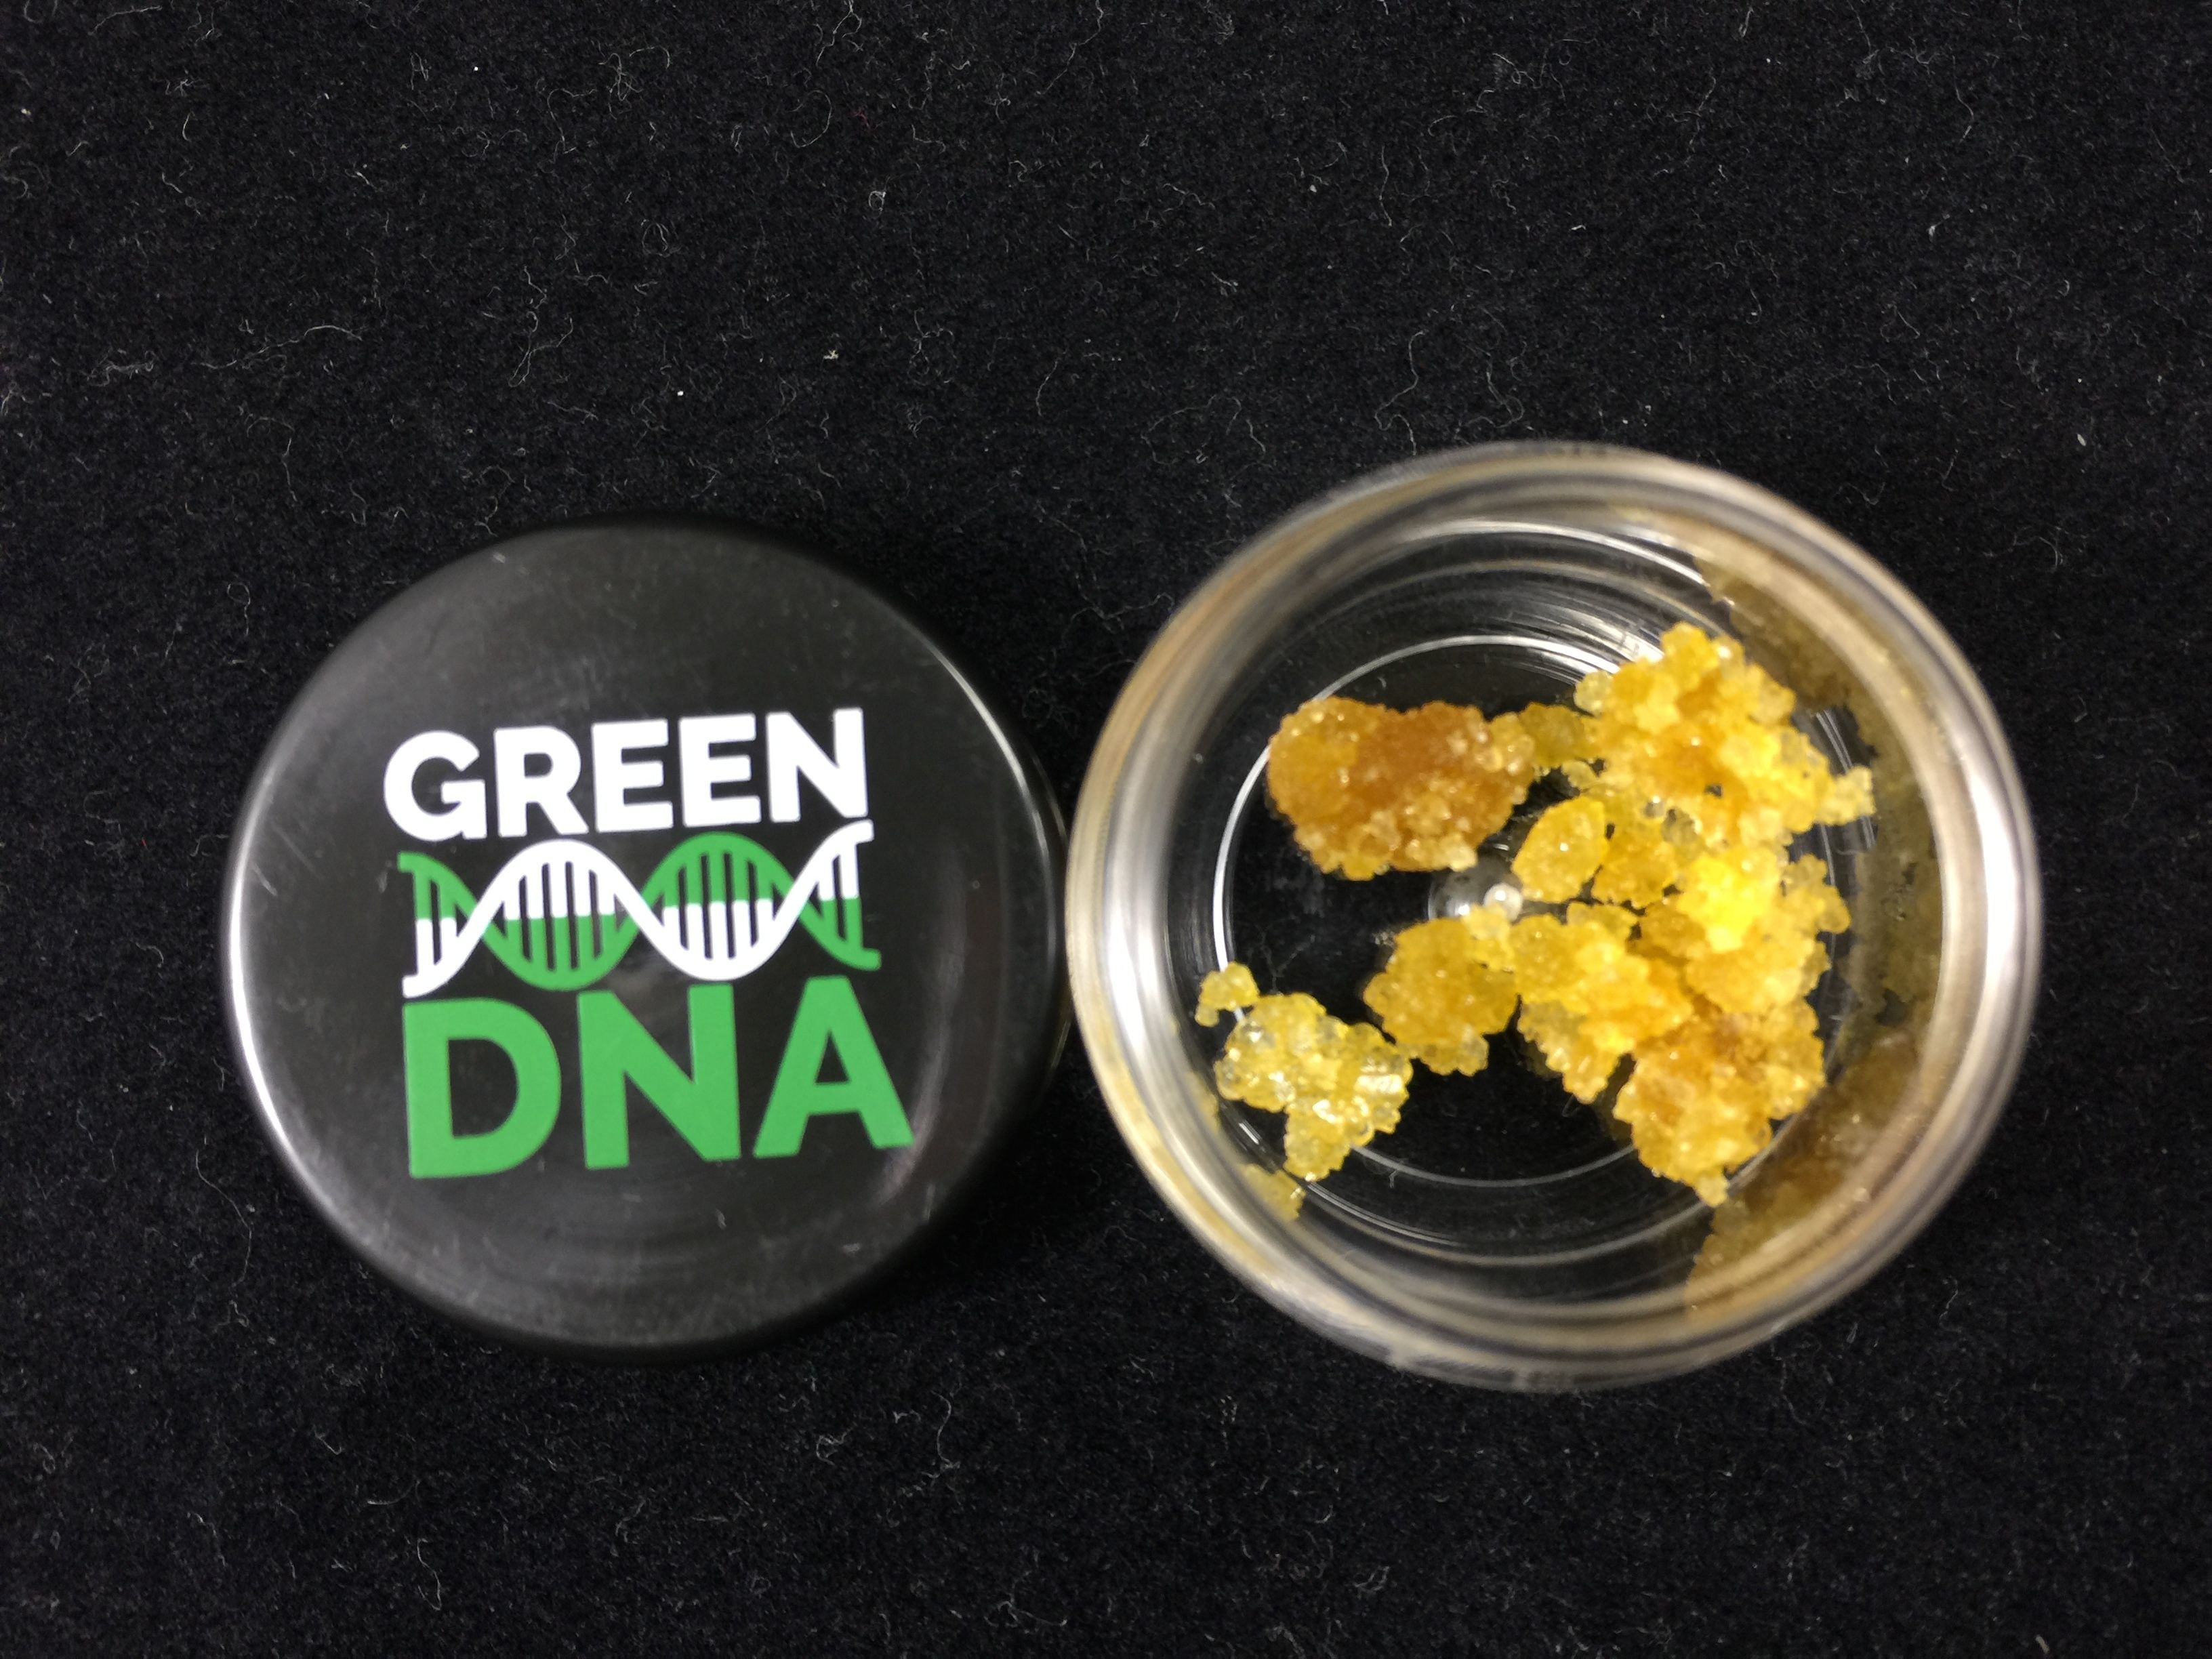 Jack Herer Sugar/Live Resin by Green DNA